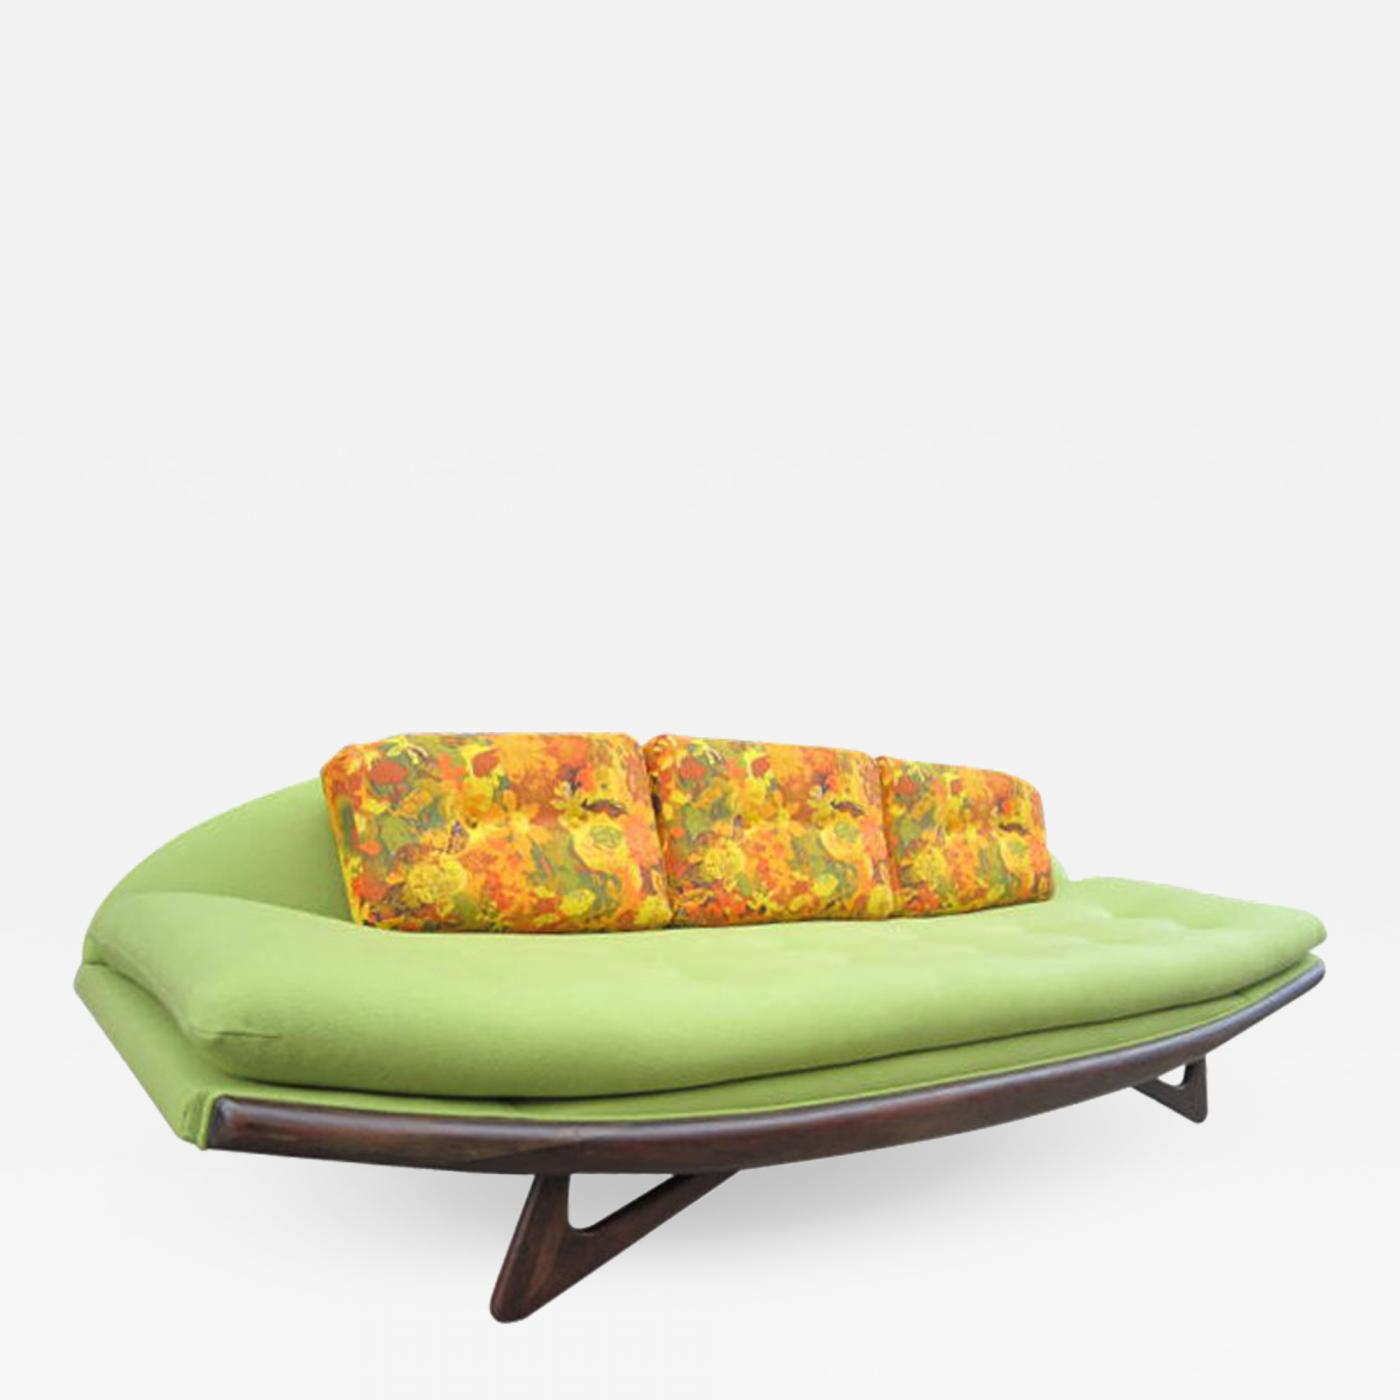 Peachy Adrian Pearsall Adrian Pearsall Sculptural Walnut Gondola Sofa Fully Restored Midcentury Gamerscity Chair Design For Home Gamerscityorg